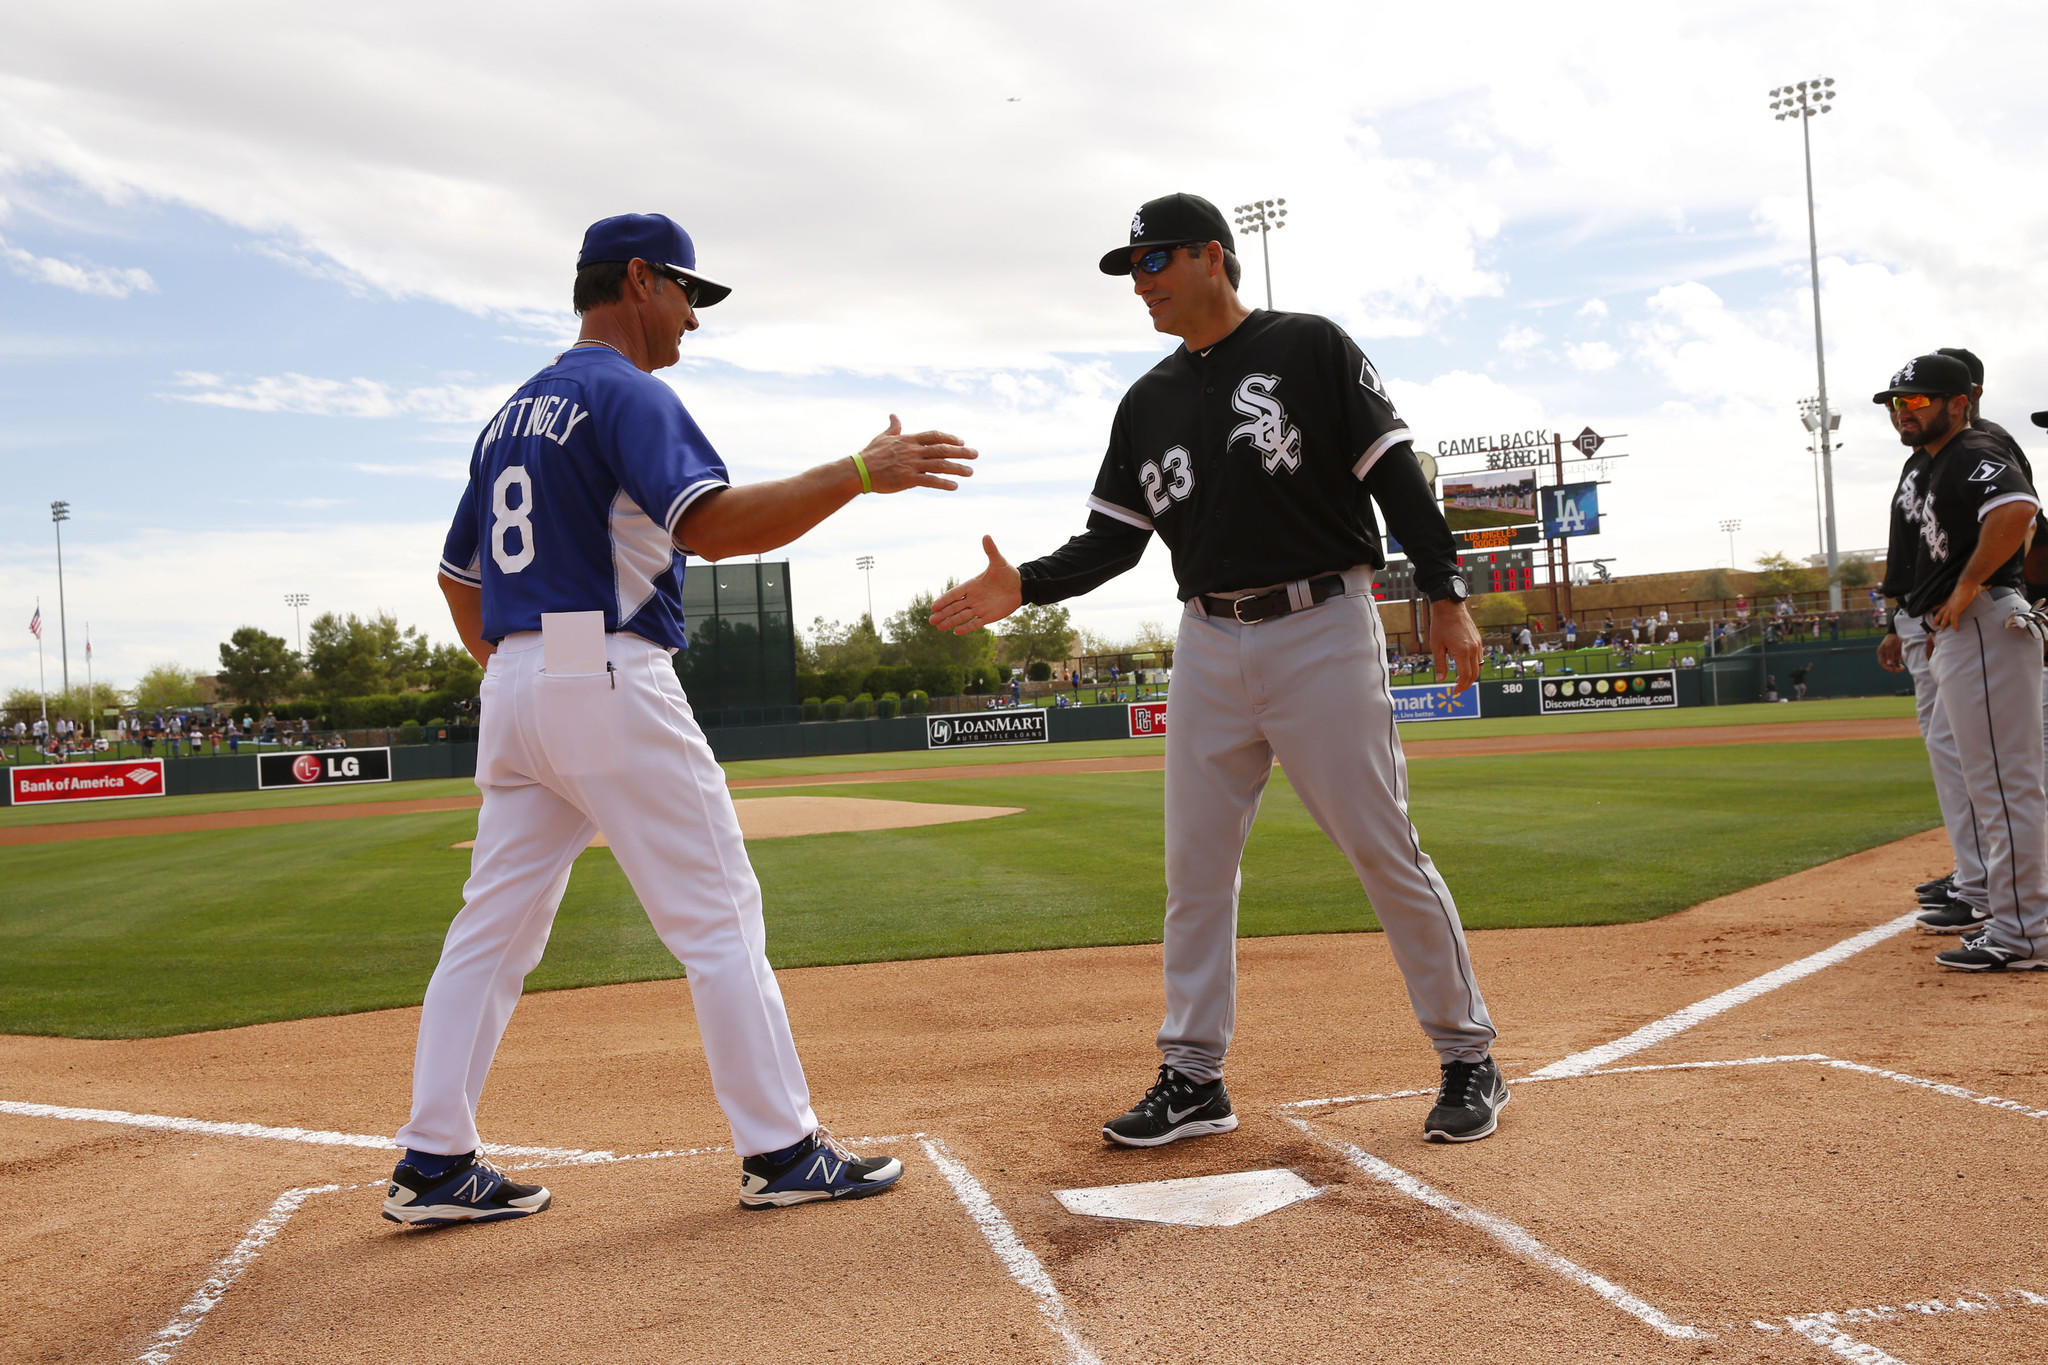 Los Angeles Dodgers Manager Don Mattingly, left, and White Sox Manager Robin Ventura shake hands Friday, Feb. 28, 2014 during the White Sox spring training opening day ceremonies at Camelback Ranch stadium in Glendale, Arizona.